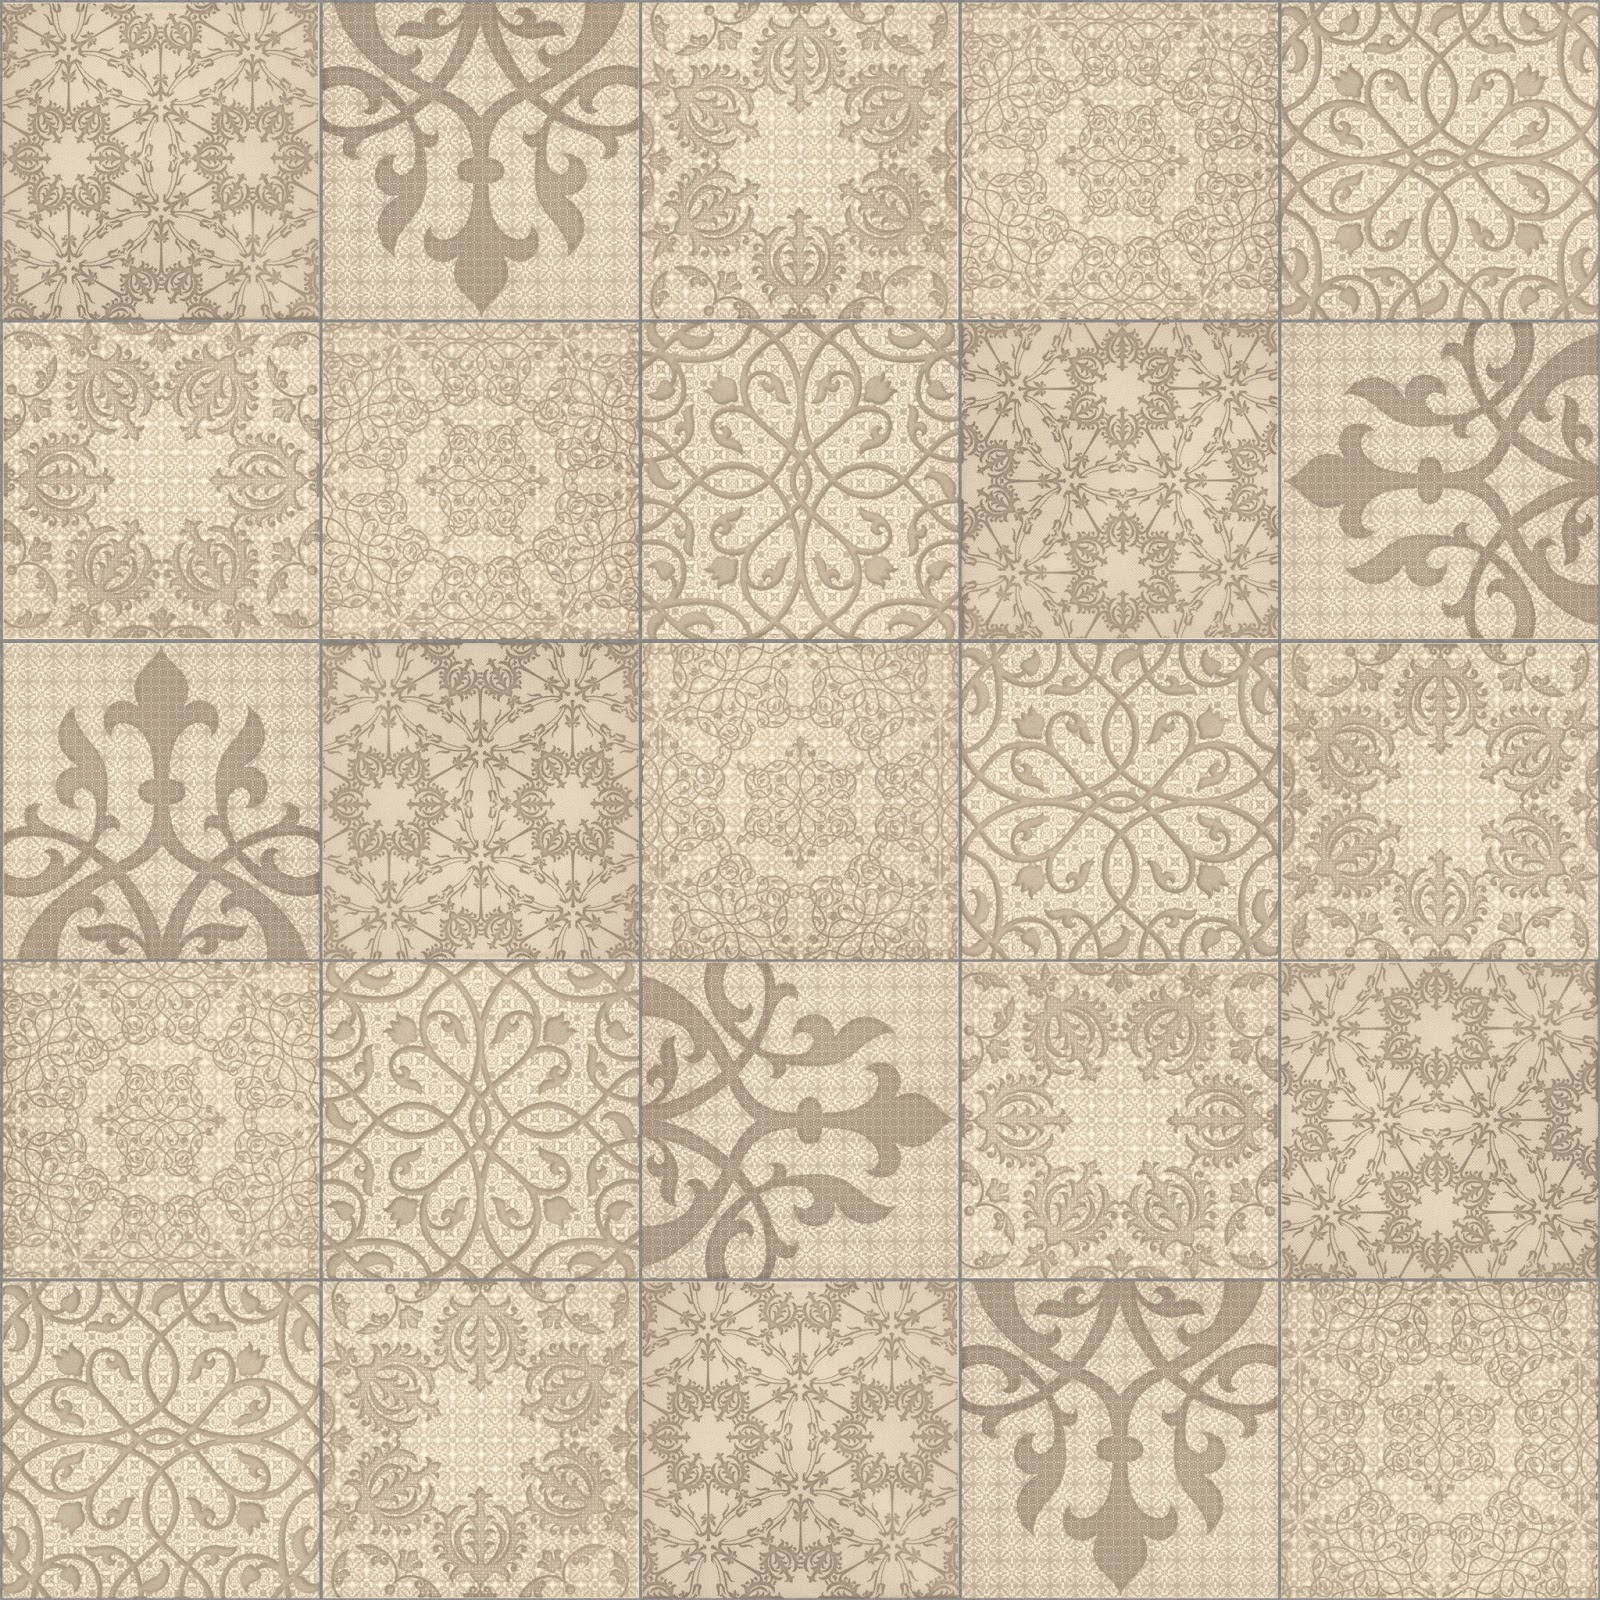 Sketchup texture march 2013 for Bedroom tiles texture